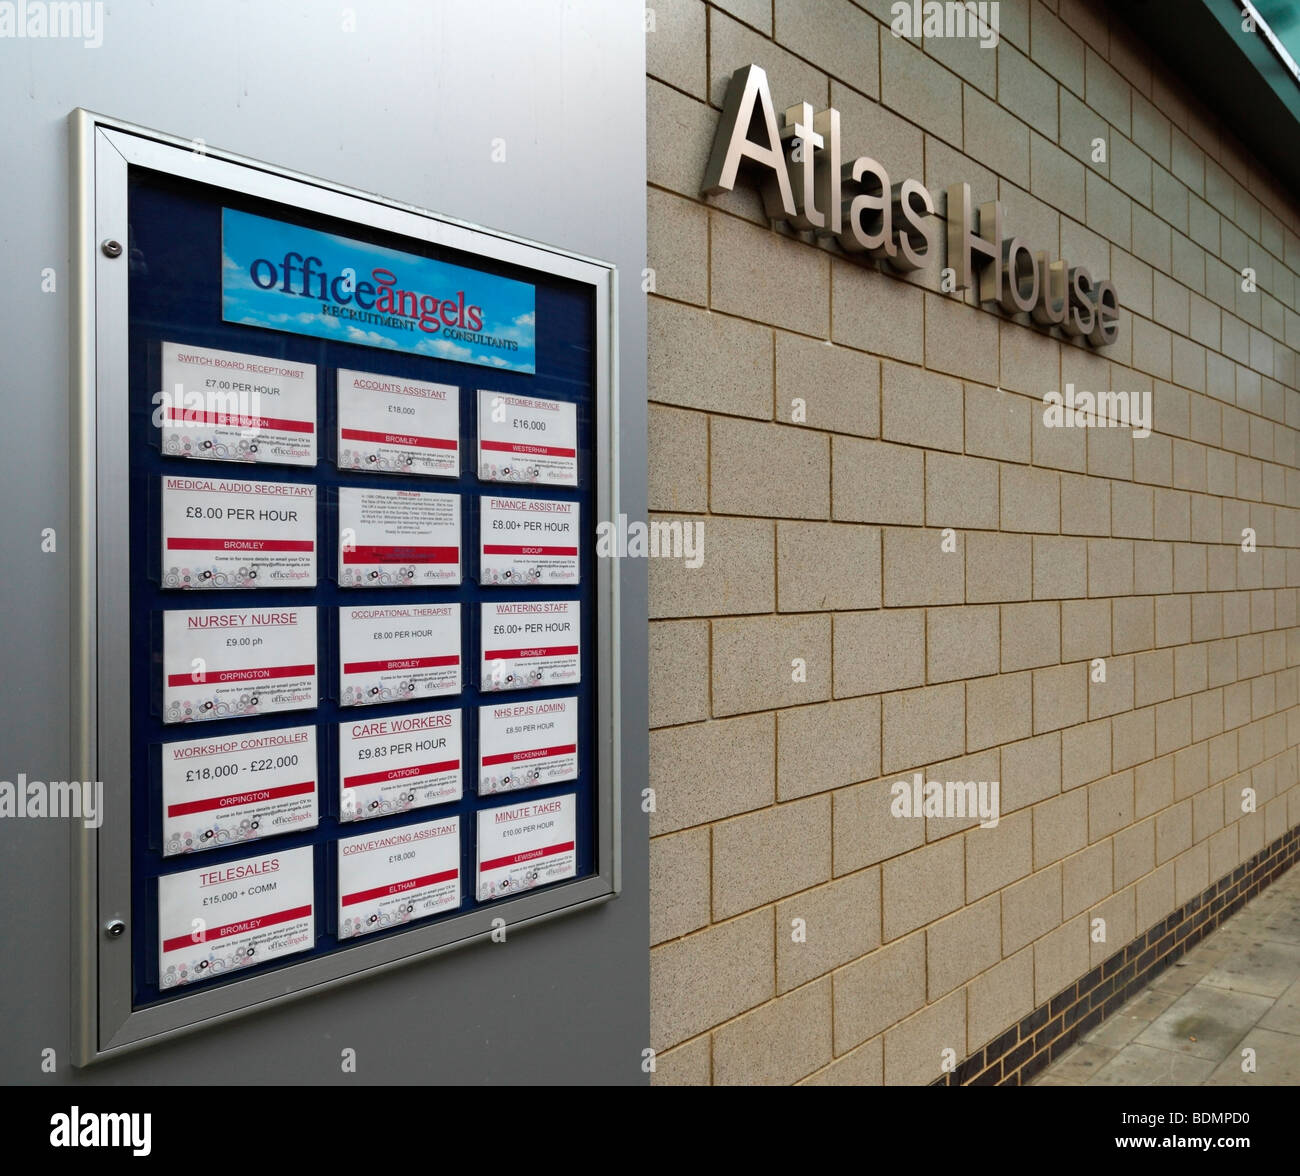 Office Angels recruitment consultants vacancies notice board, London, UK. - Stock Image